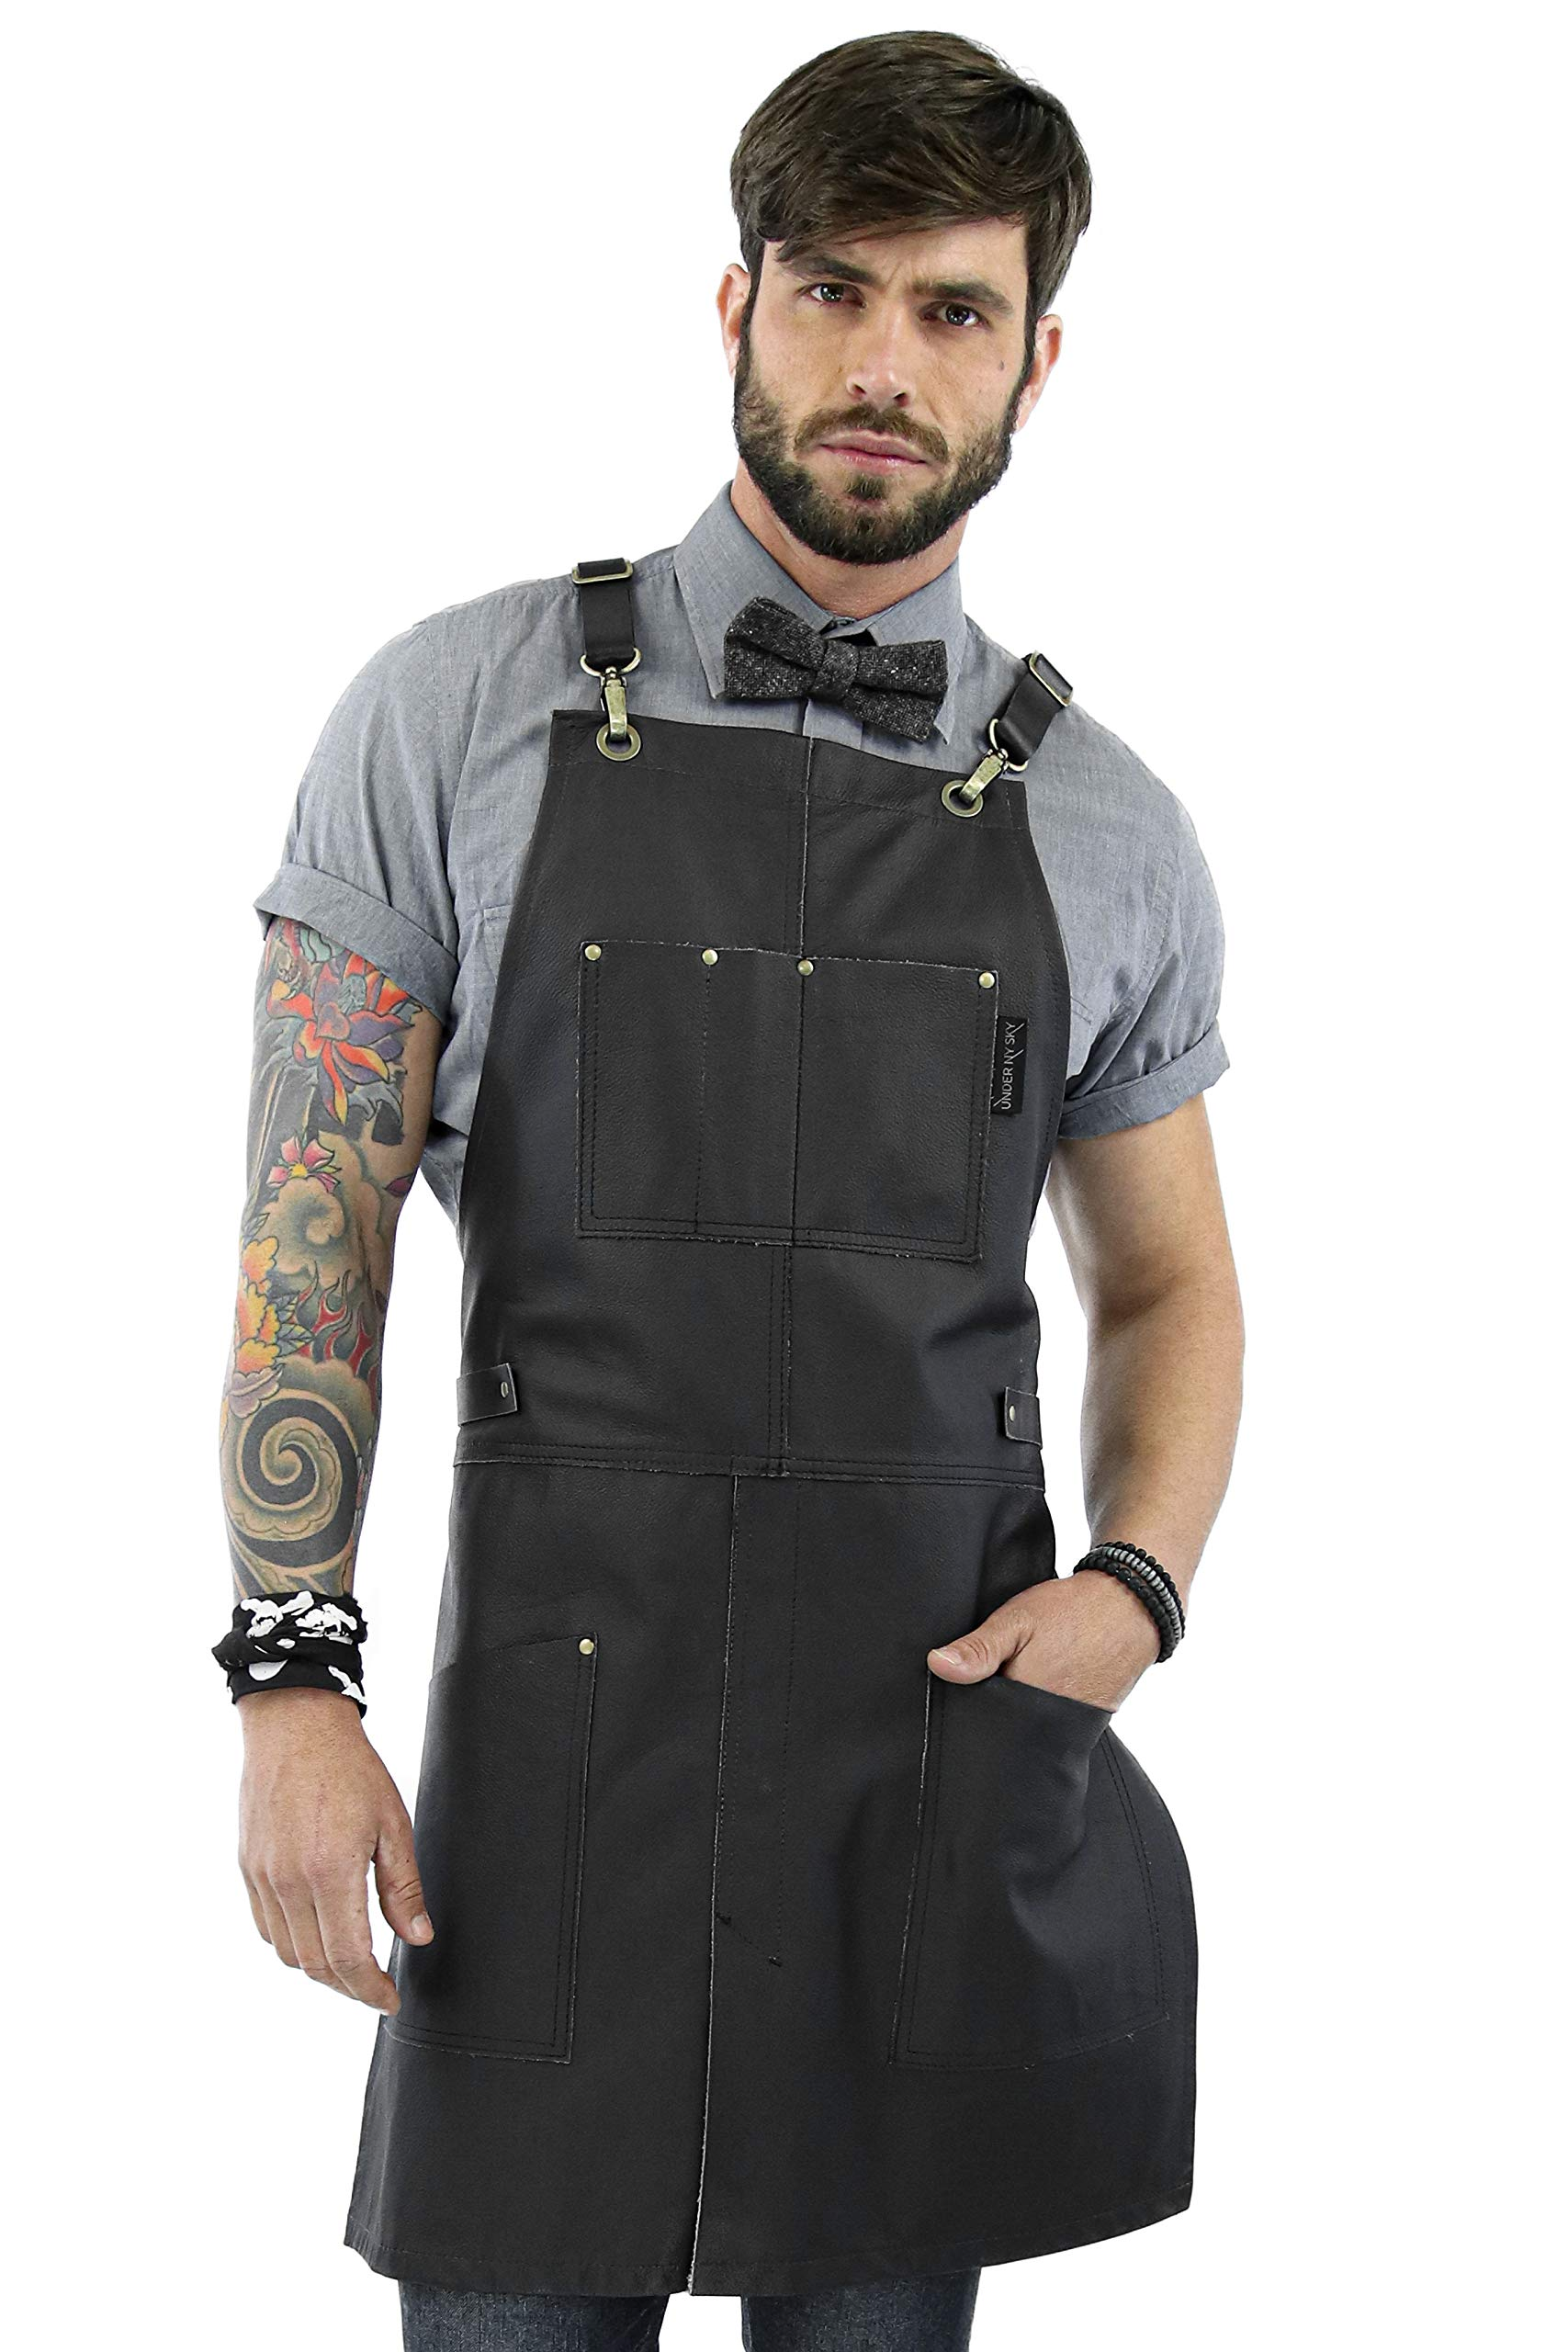 Under NY Sky Real Leather Apron - Black Leather Body, Pockets and Crossback Straps - Split-Leg, Lined - Adjustable for Men and Women - Pro Chef, Barista, Barber, Woodworker, Shop, Bartender, Maker by Under NY Sky